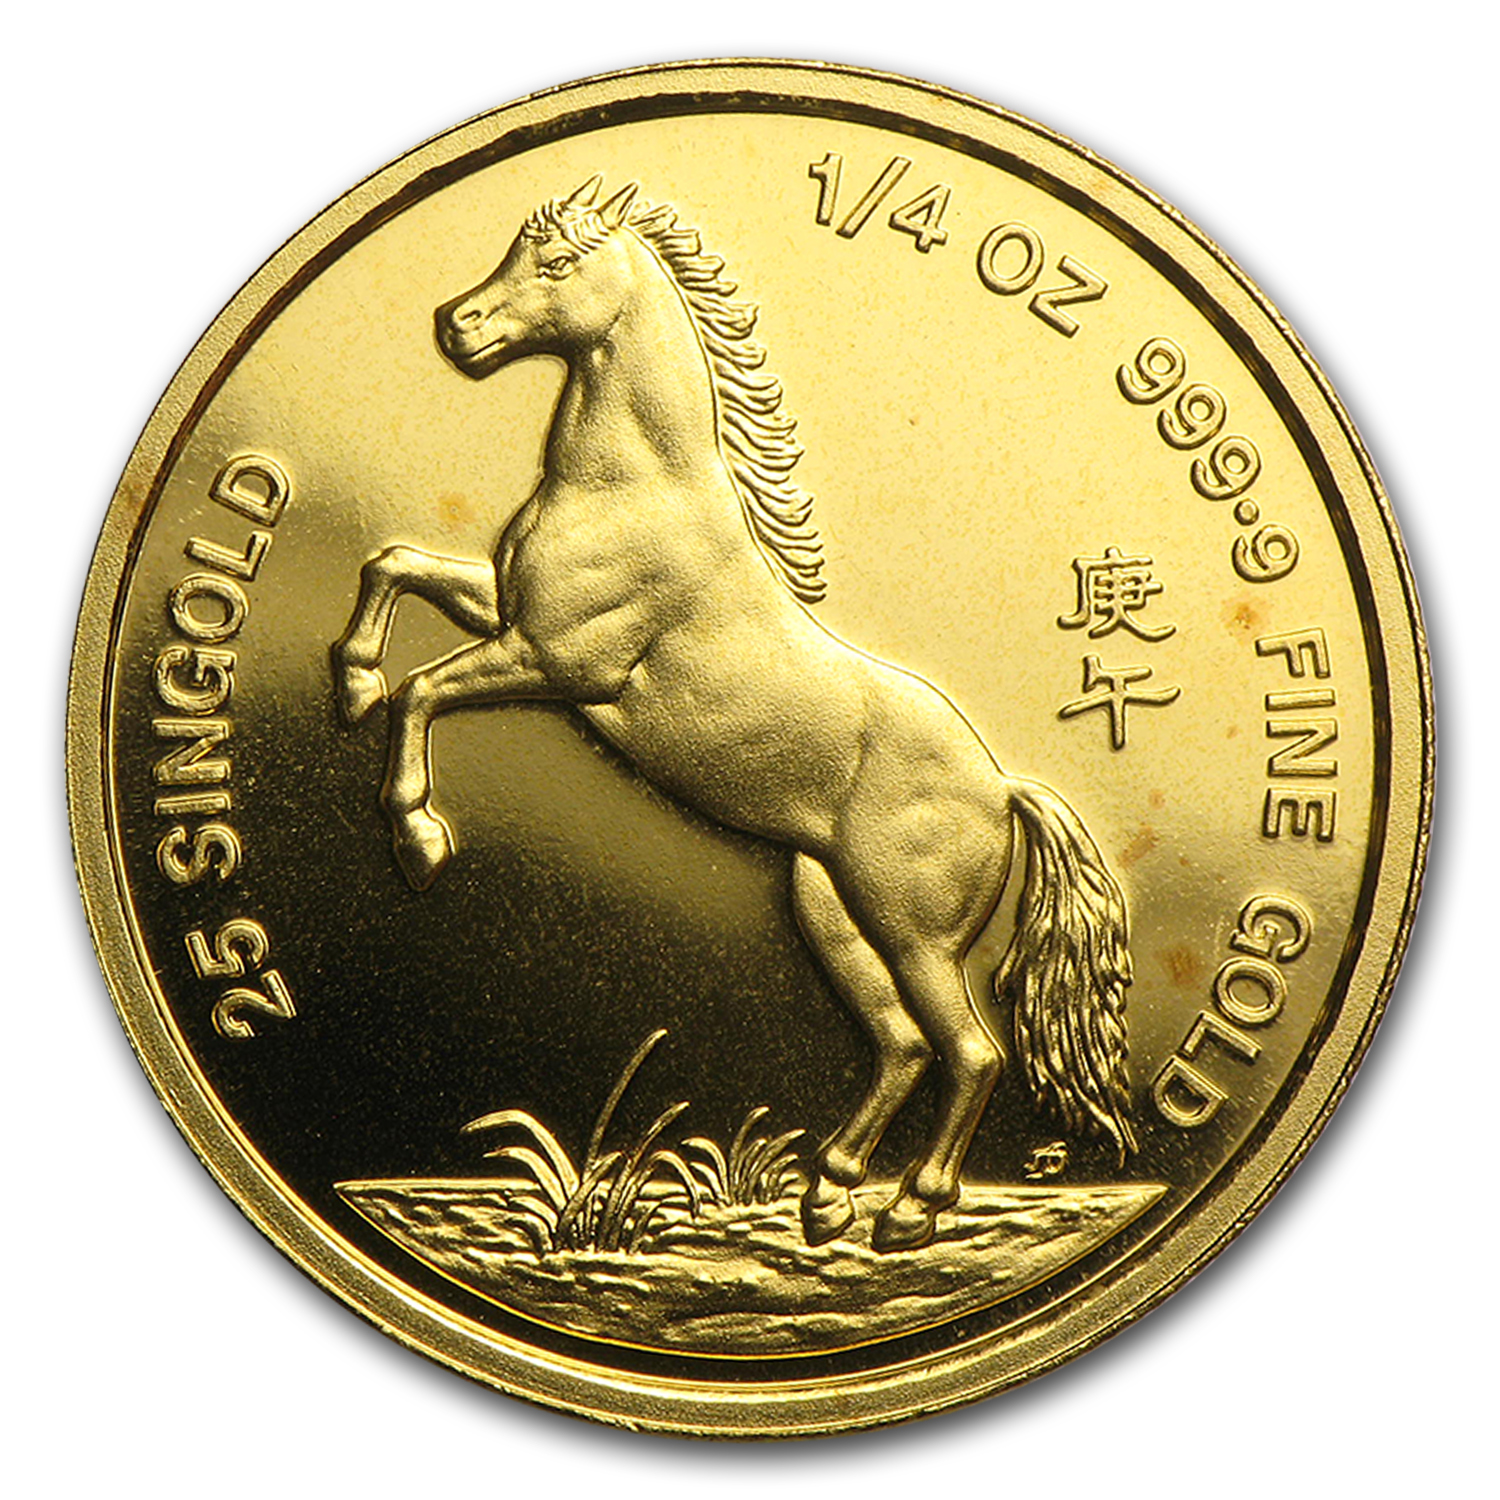 1990 Singapore 1/4 oz Proof Gold 25 Singold Year of the Horse